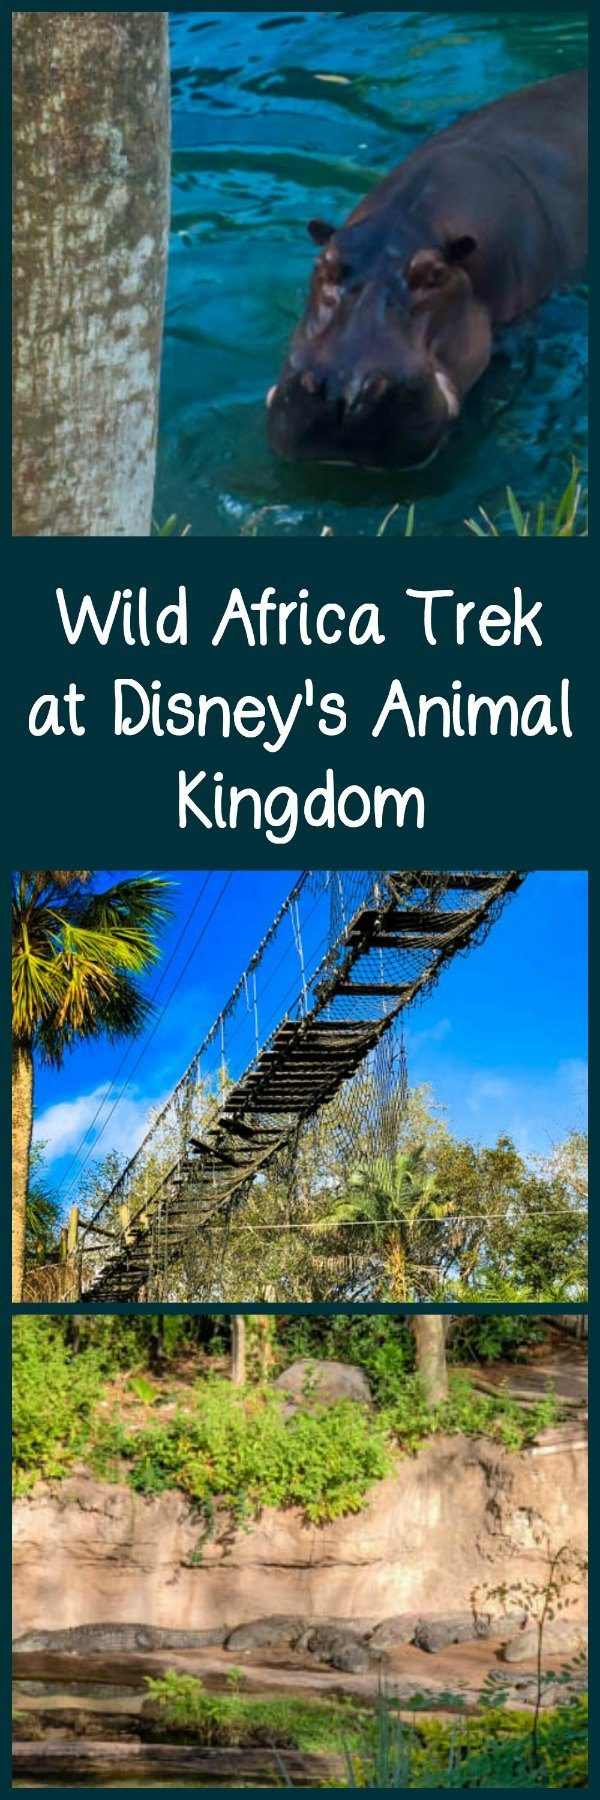 A review of the three-hour Wild Africa Trek at Disney's Animal Kingdom - a VIP tour experience at Walt Disney World.